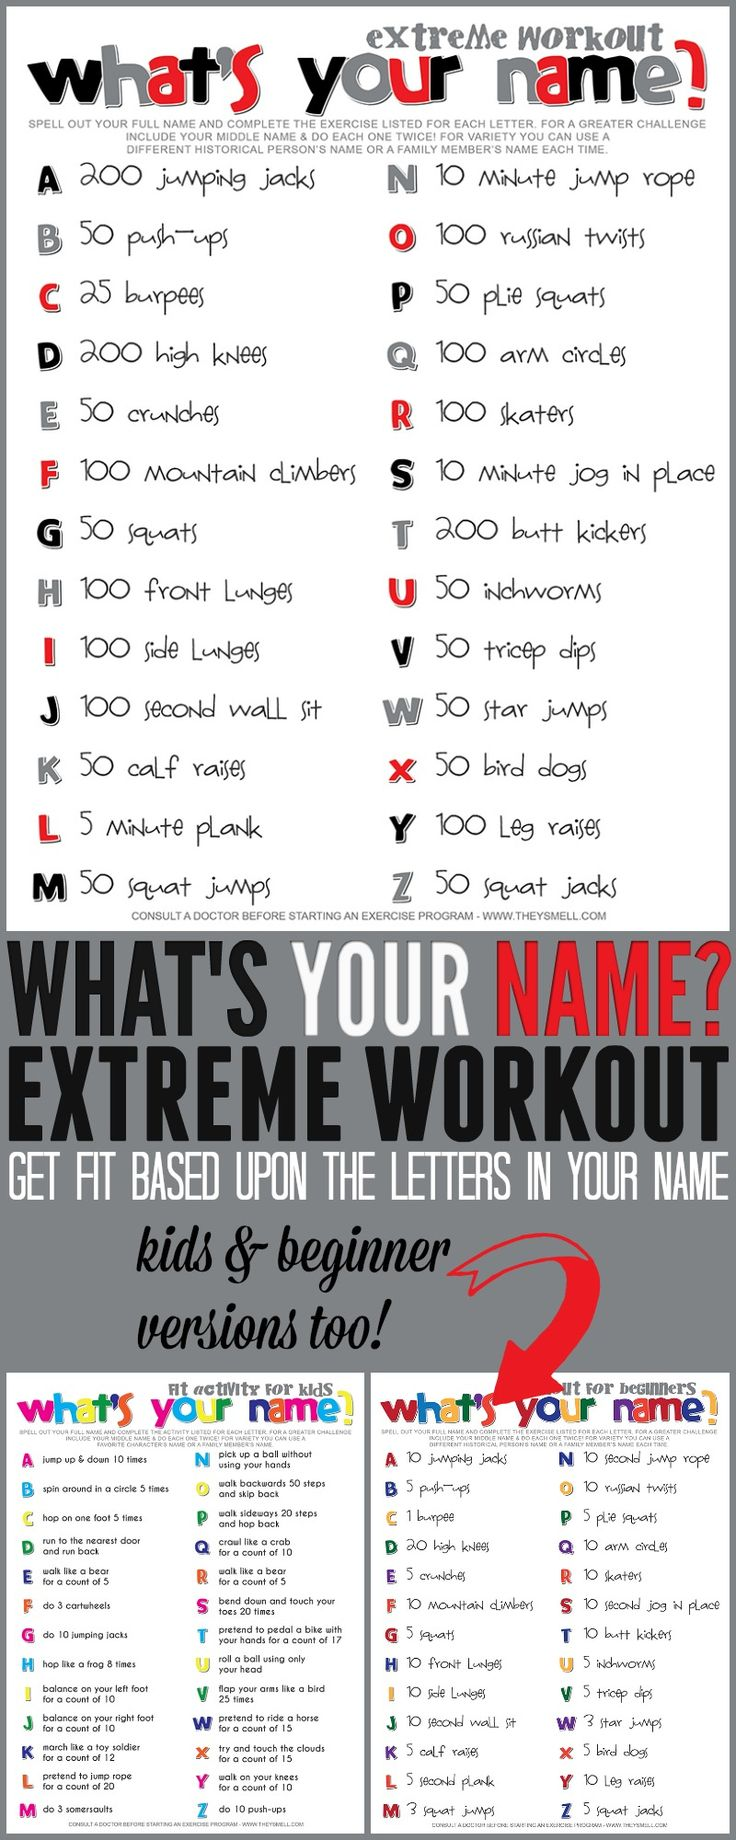 What's your name? extreme workout. Challenge yourself with this extreme yet fun workout that will push your fitness to the limit!